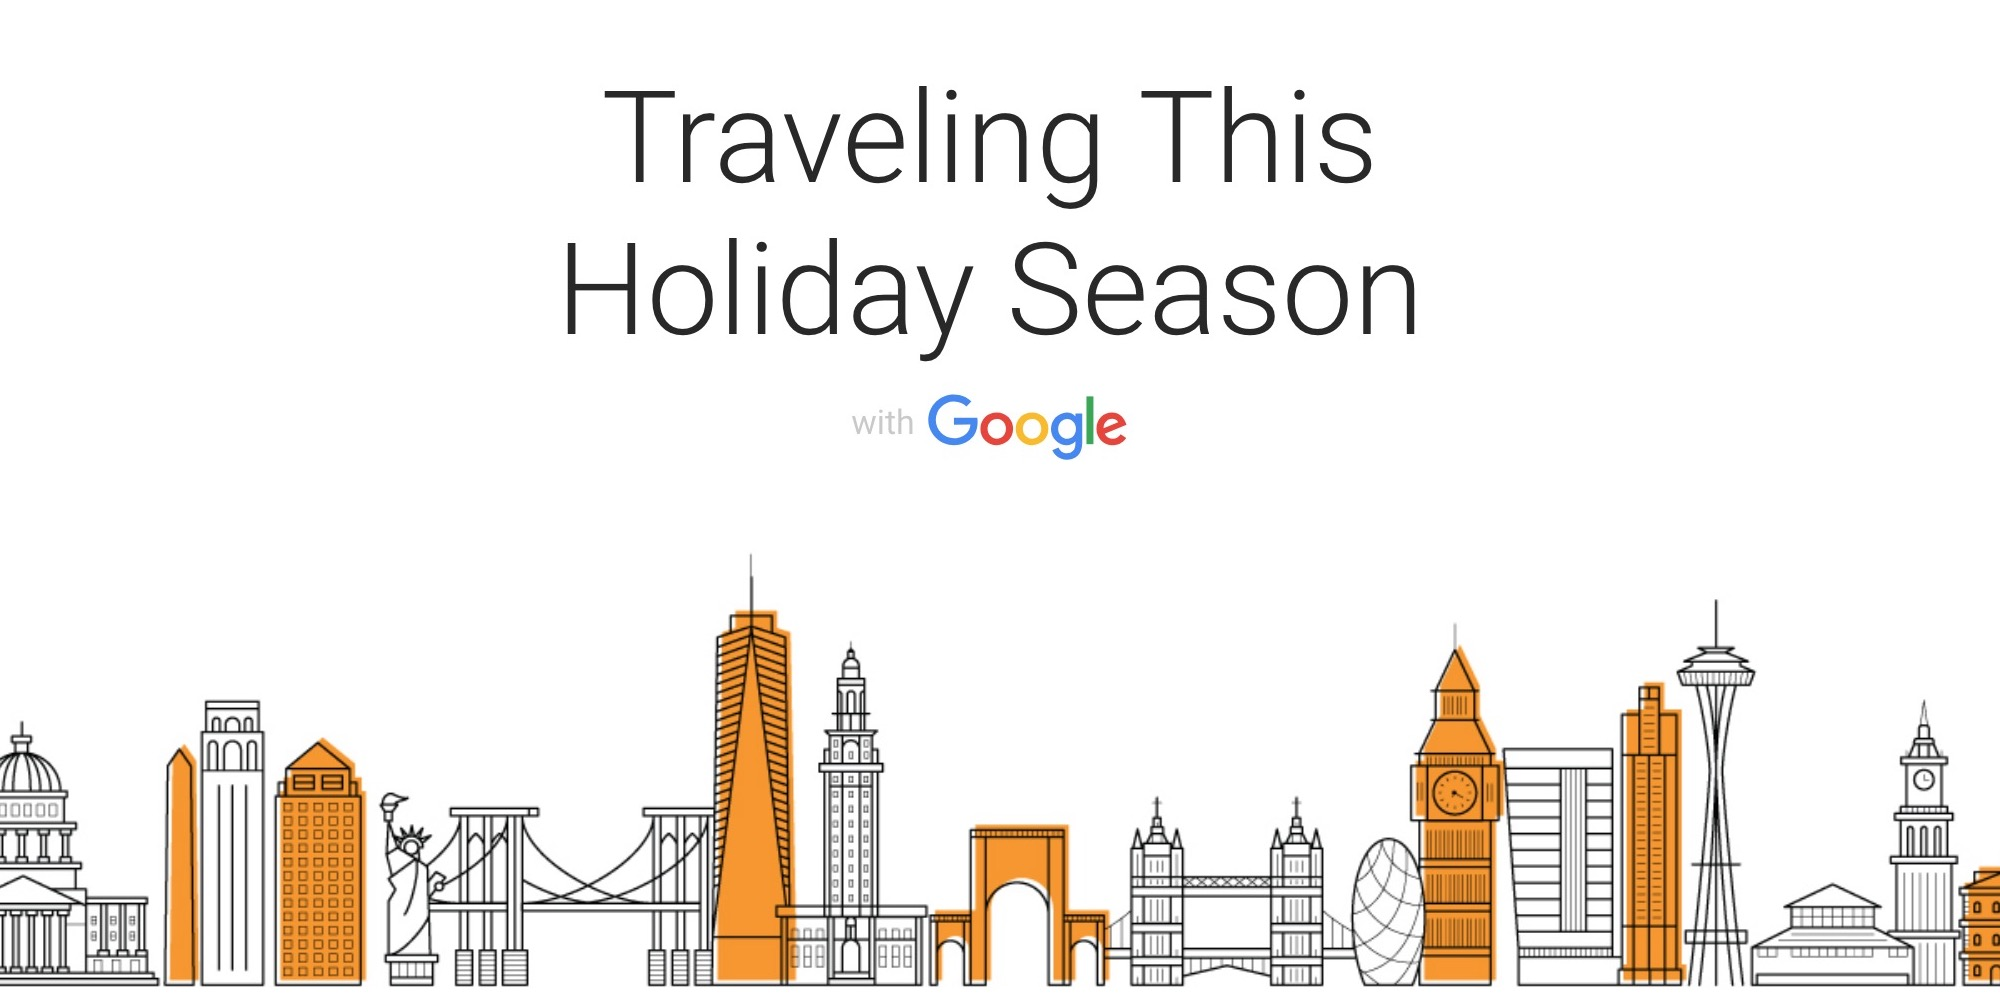 Google Flights & Hotel Search add price insights to tell if you're booking a good holiday deal